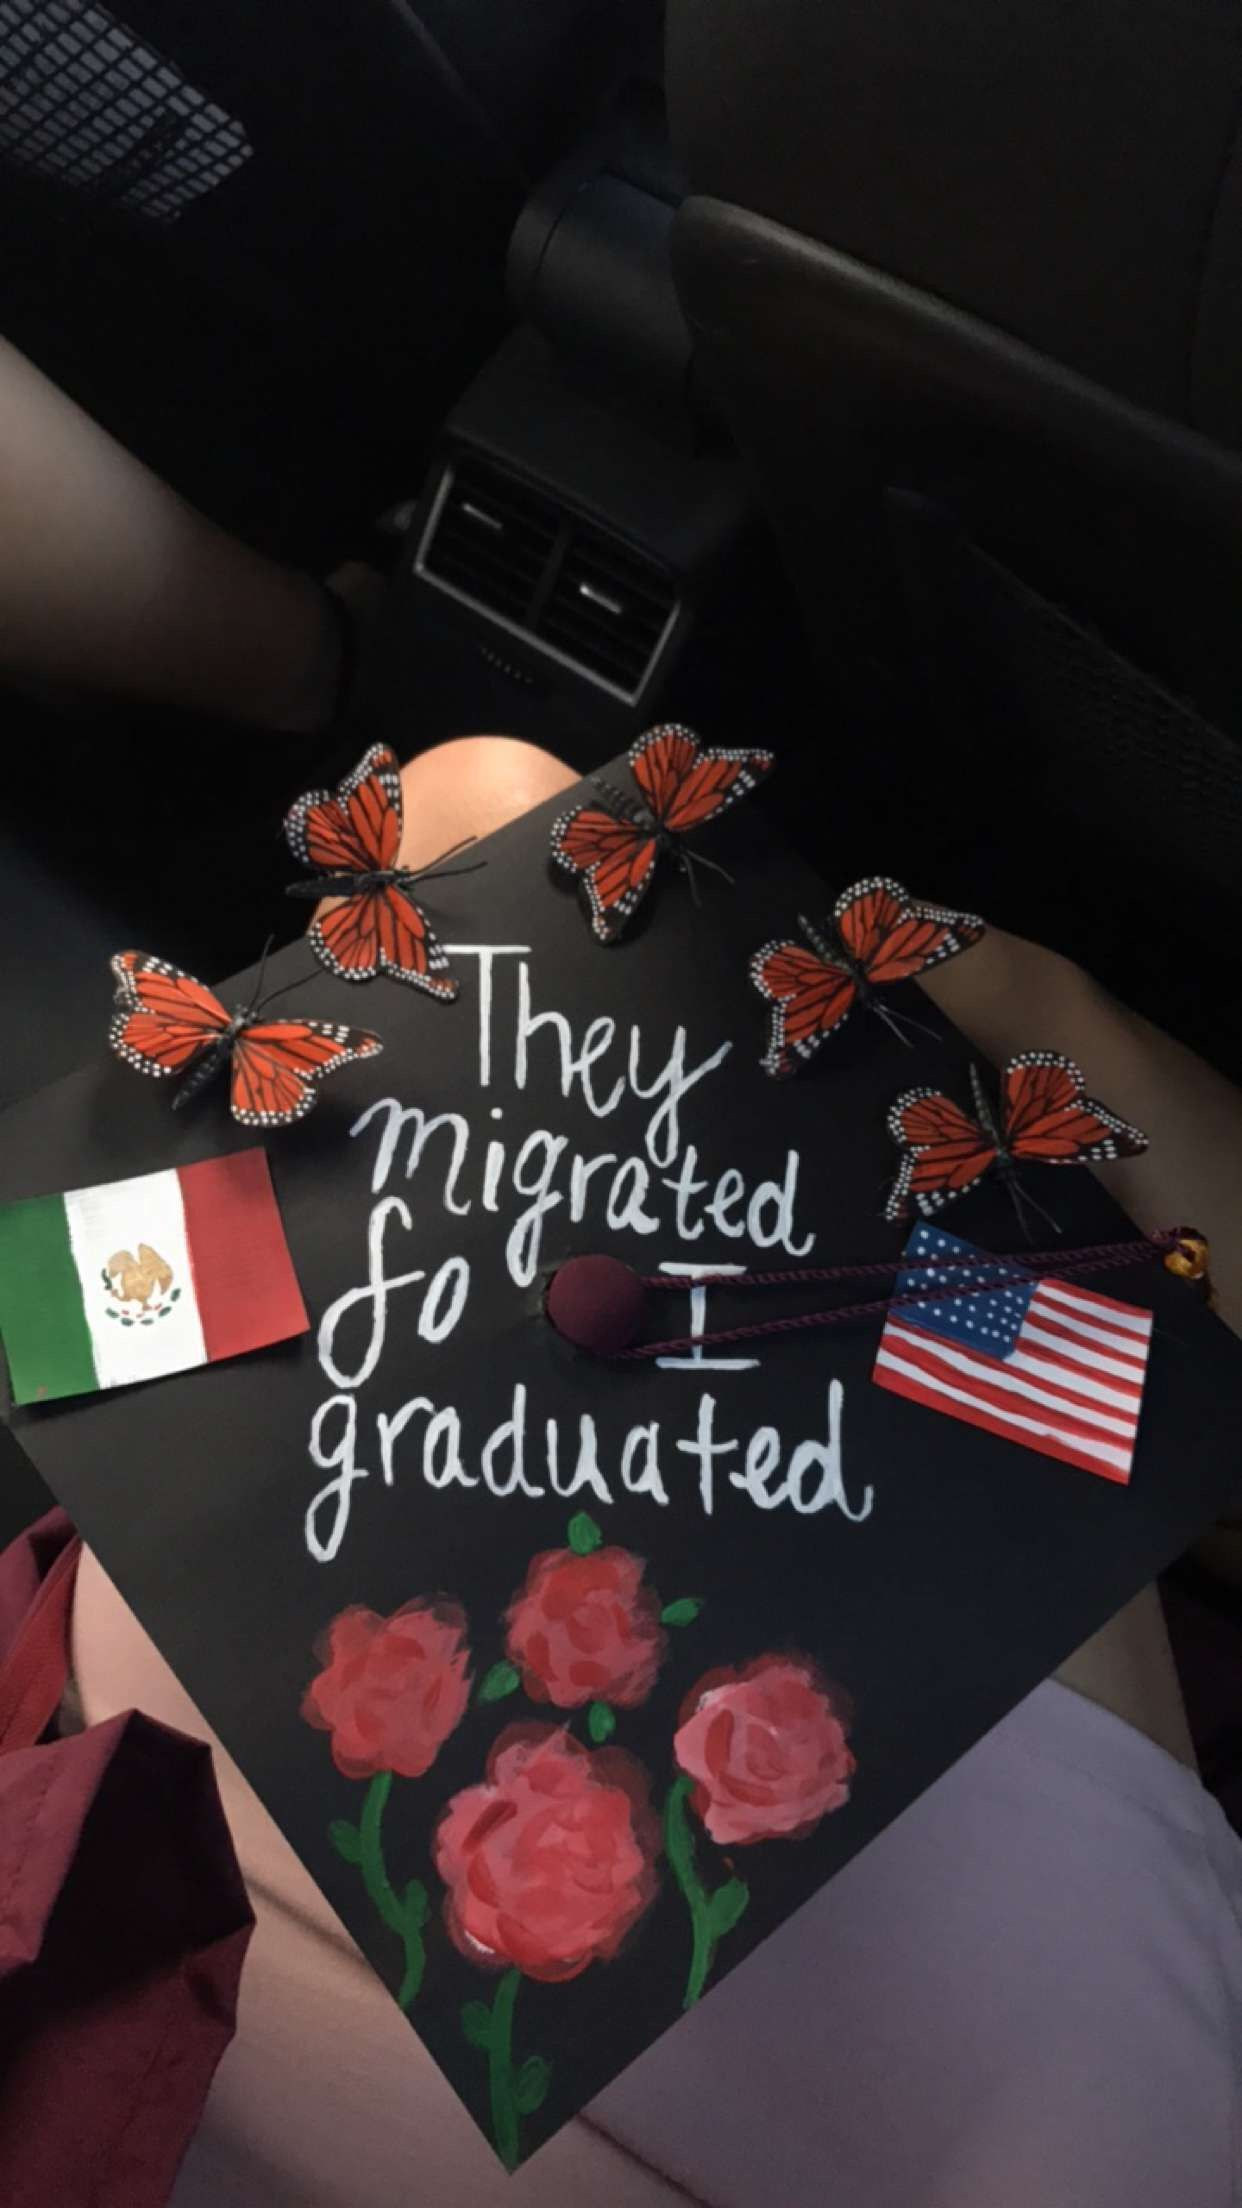 Medium Crop Of Decorated Graduation Caps